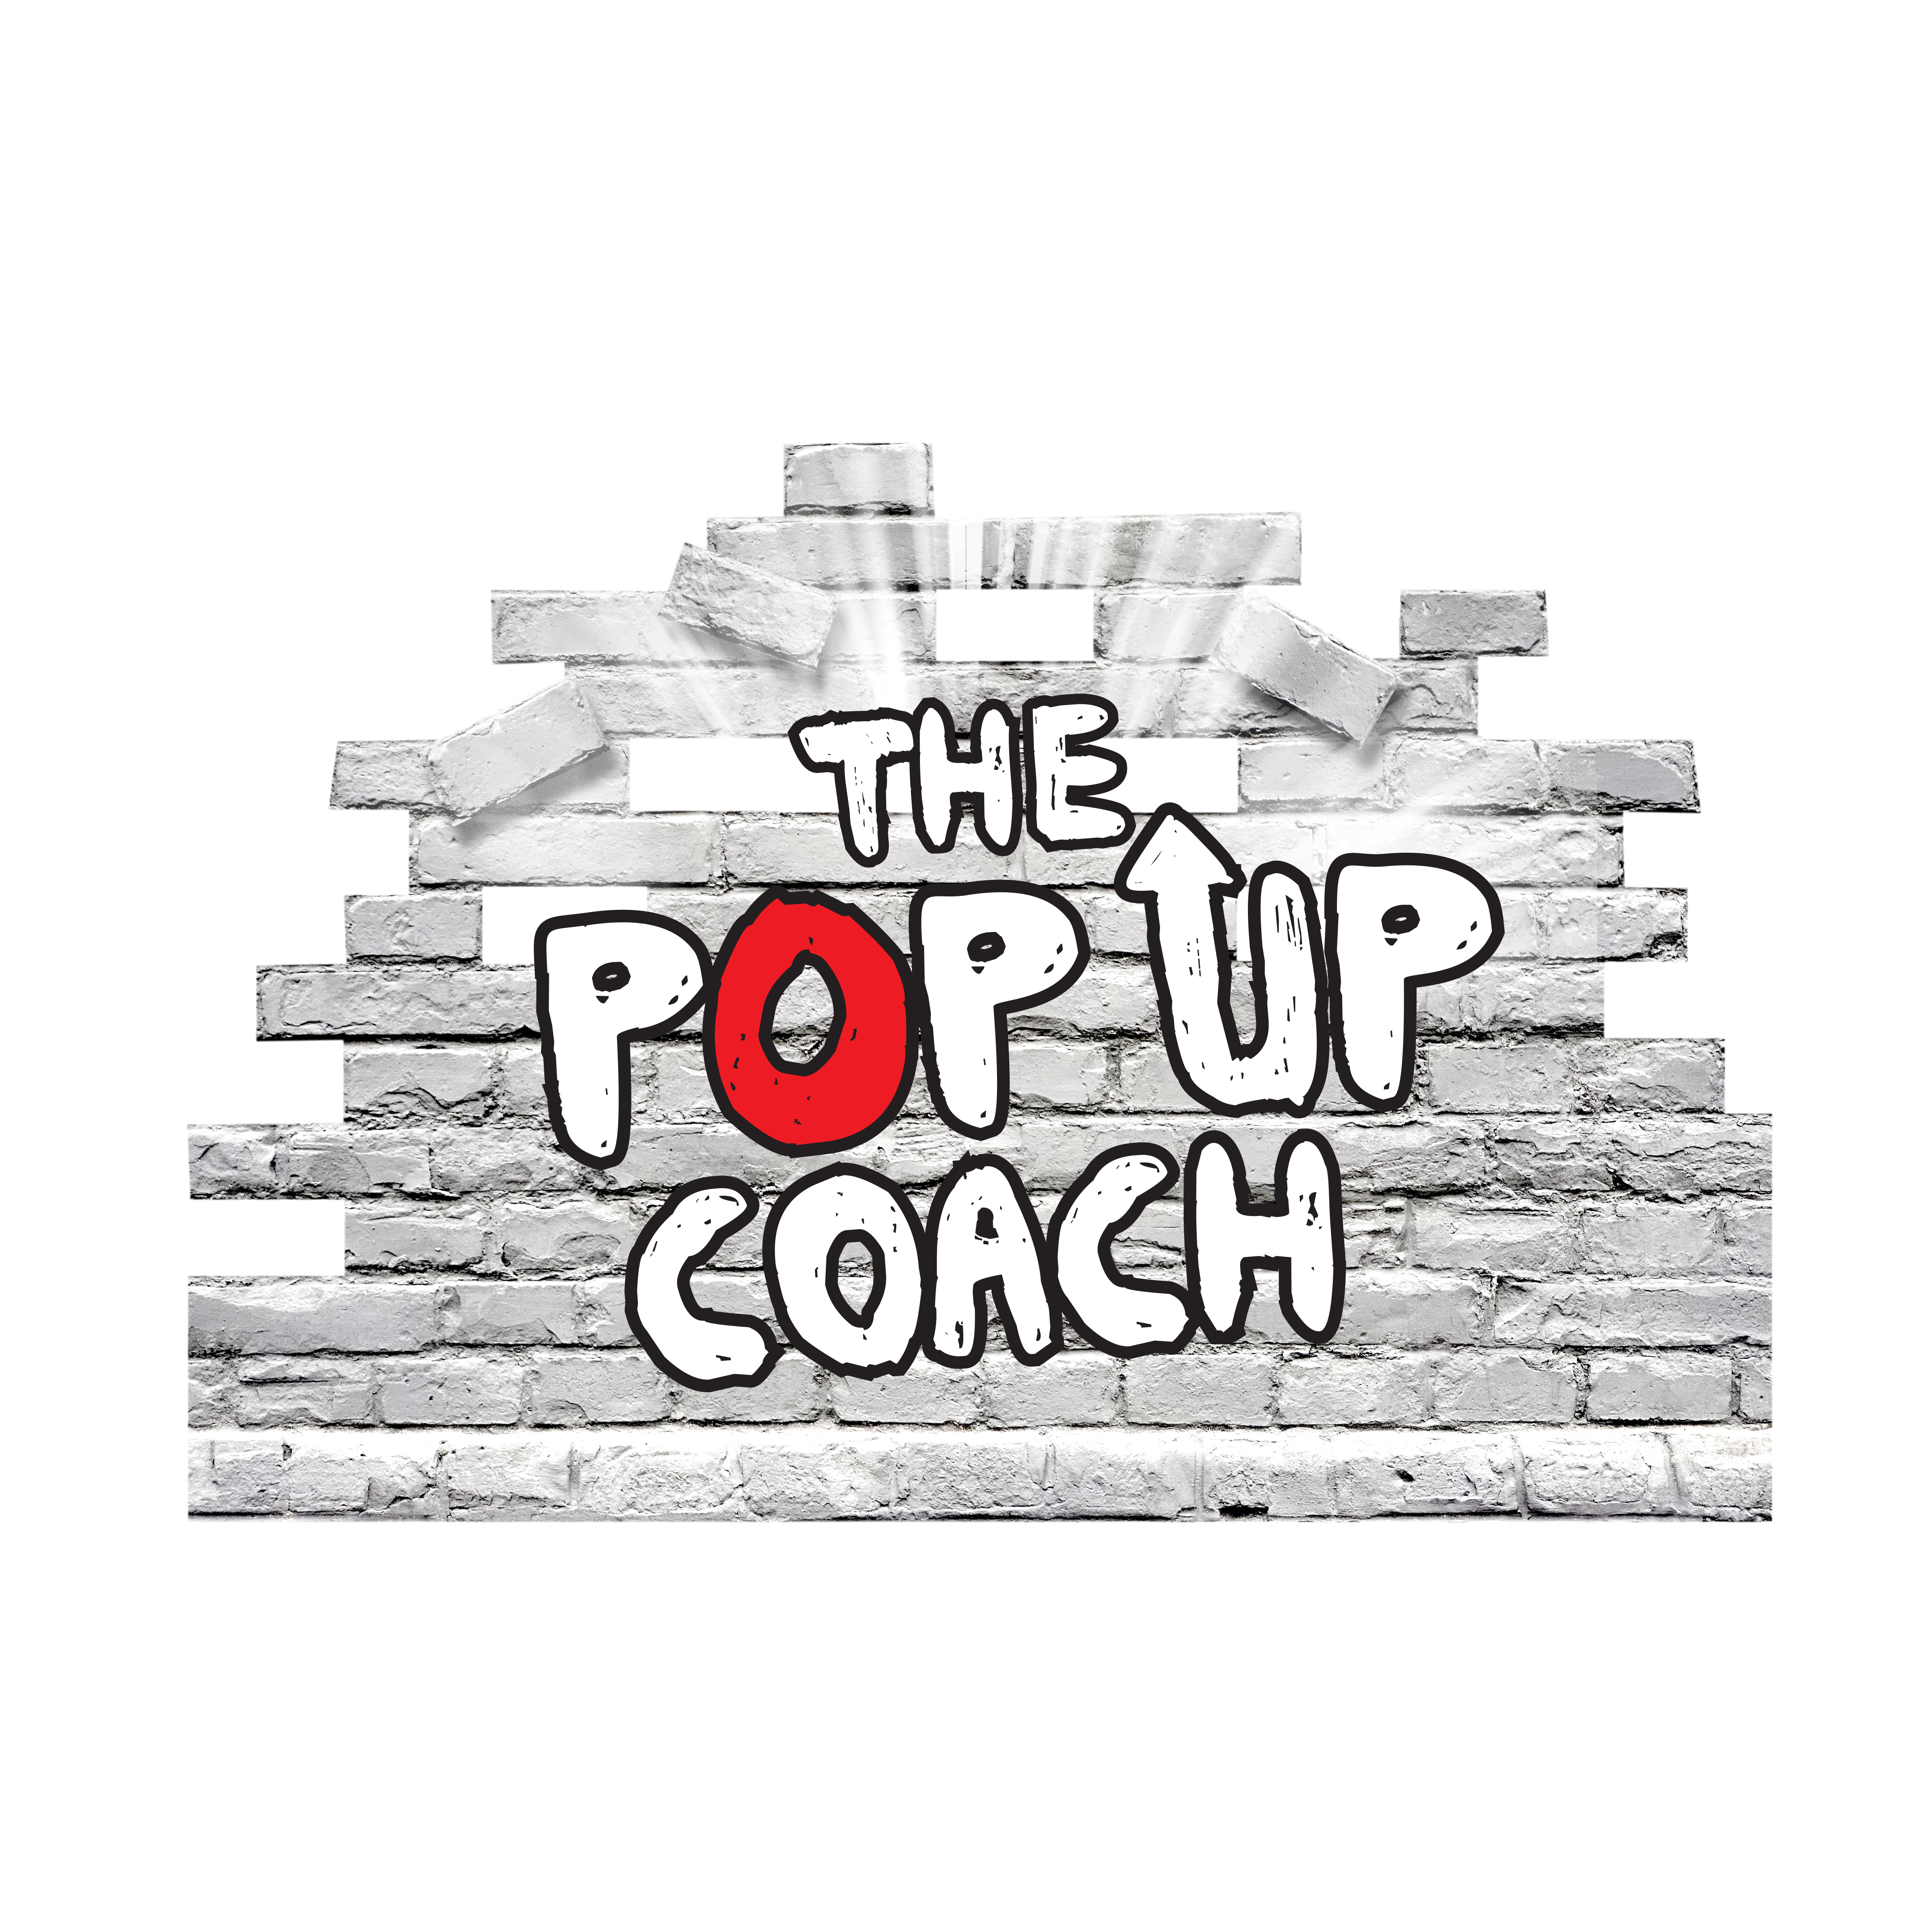 Out of the box artistic logo needed for The PopUp Coach!